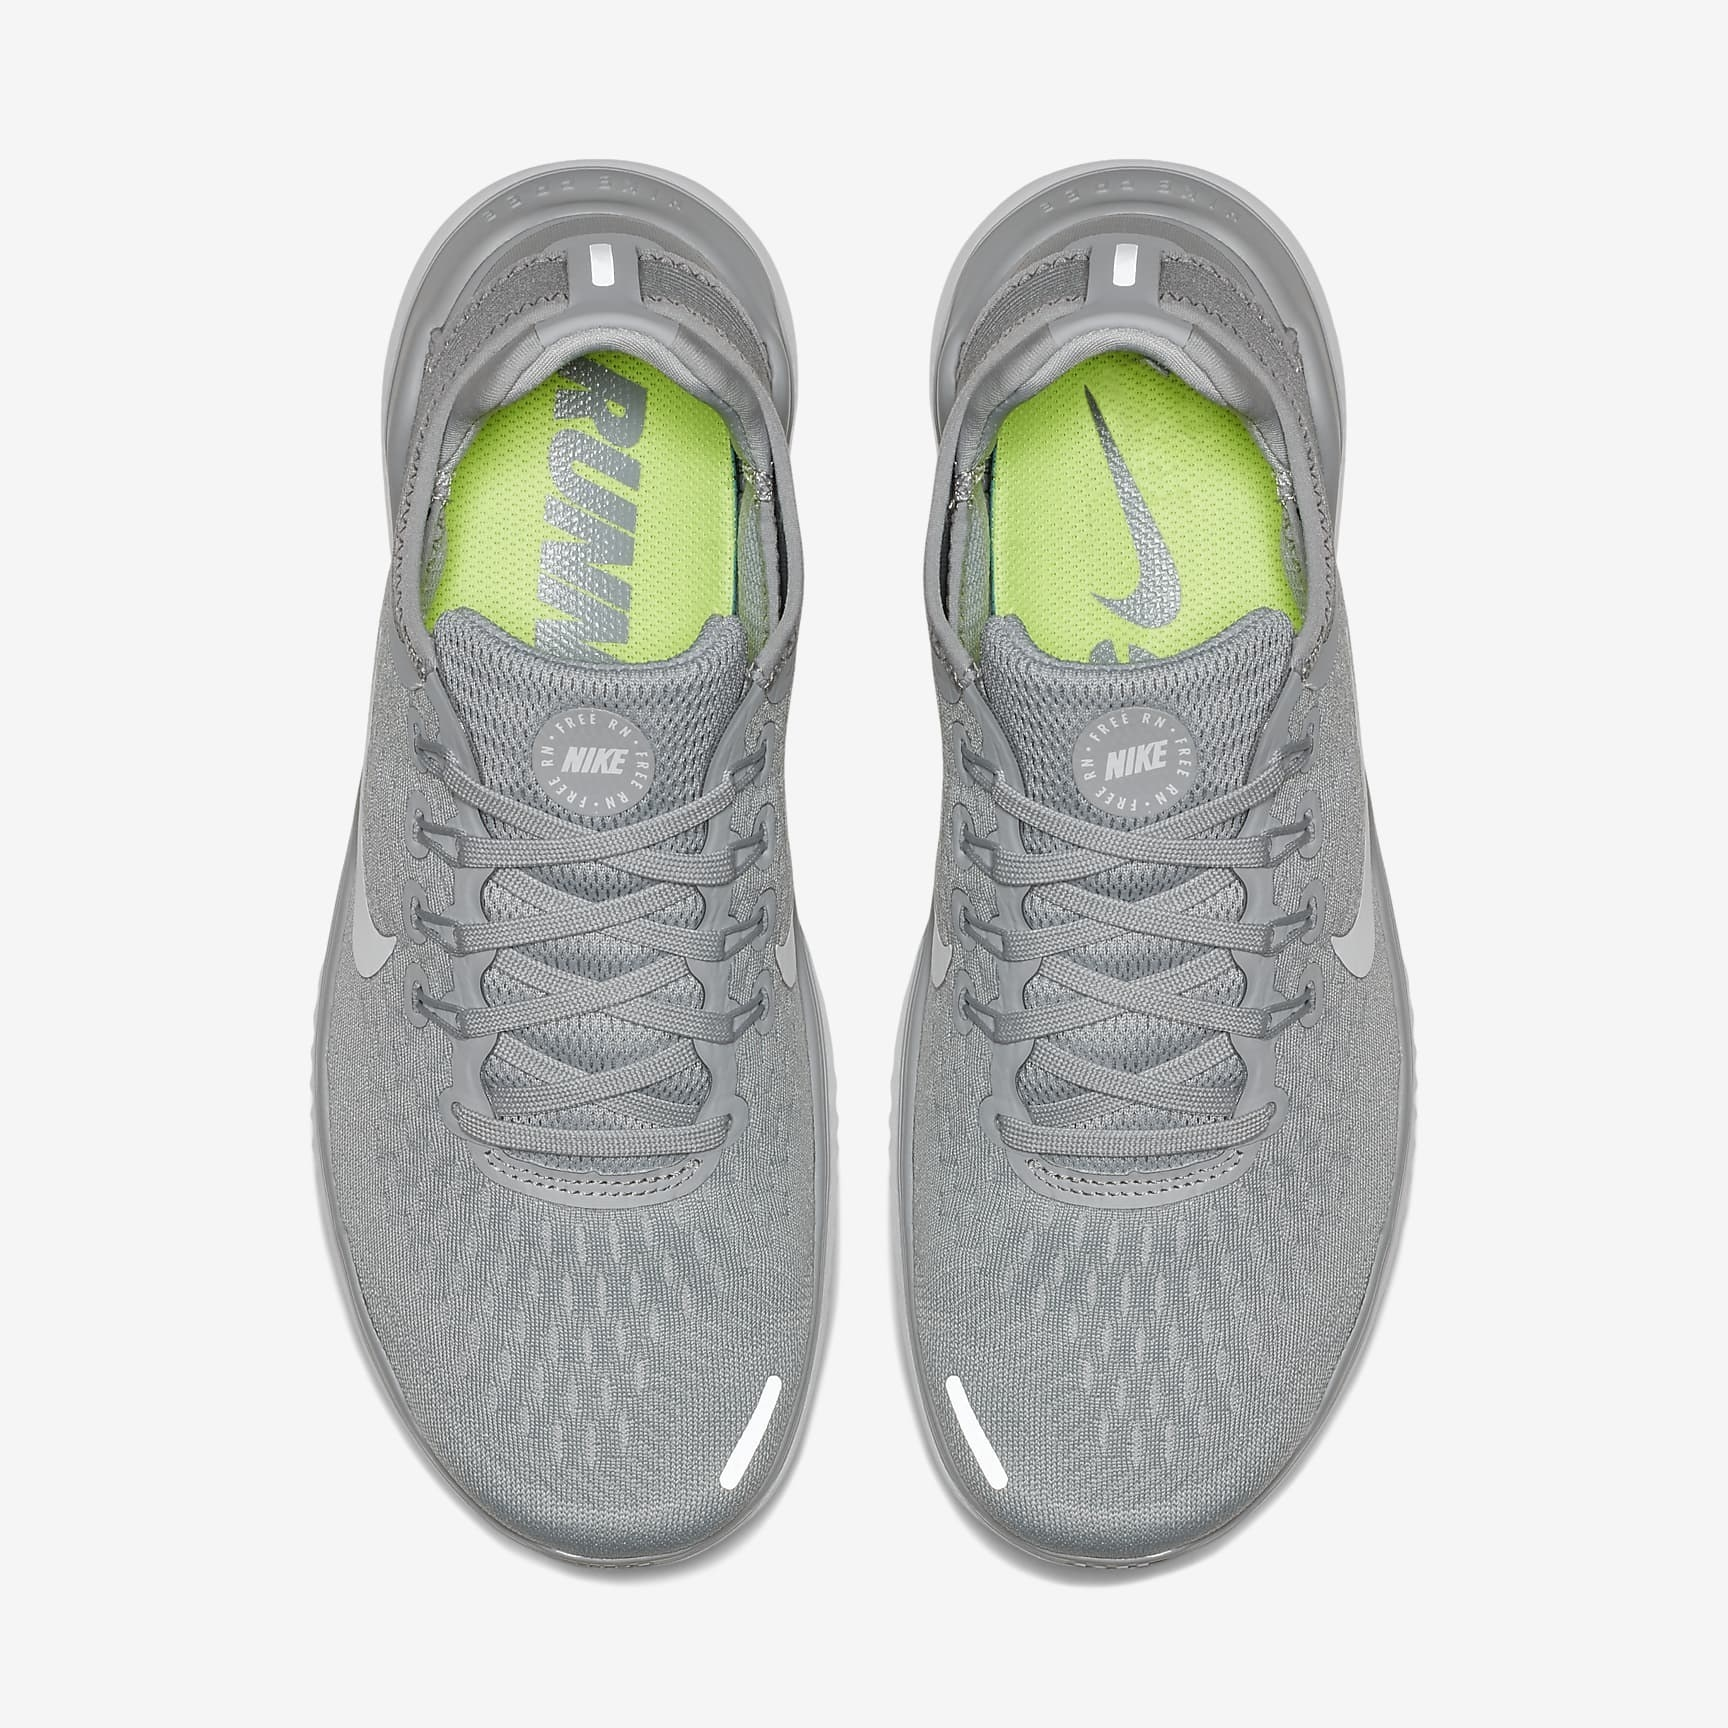 gray running shoots with reflective tape on them for running at night